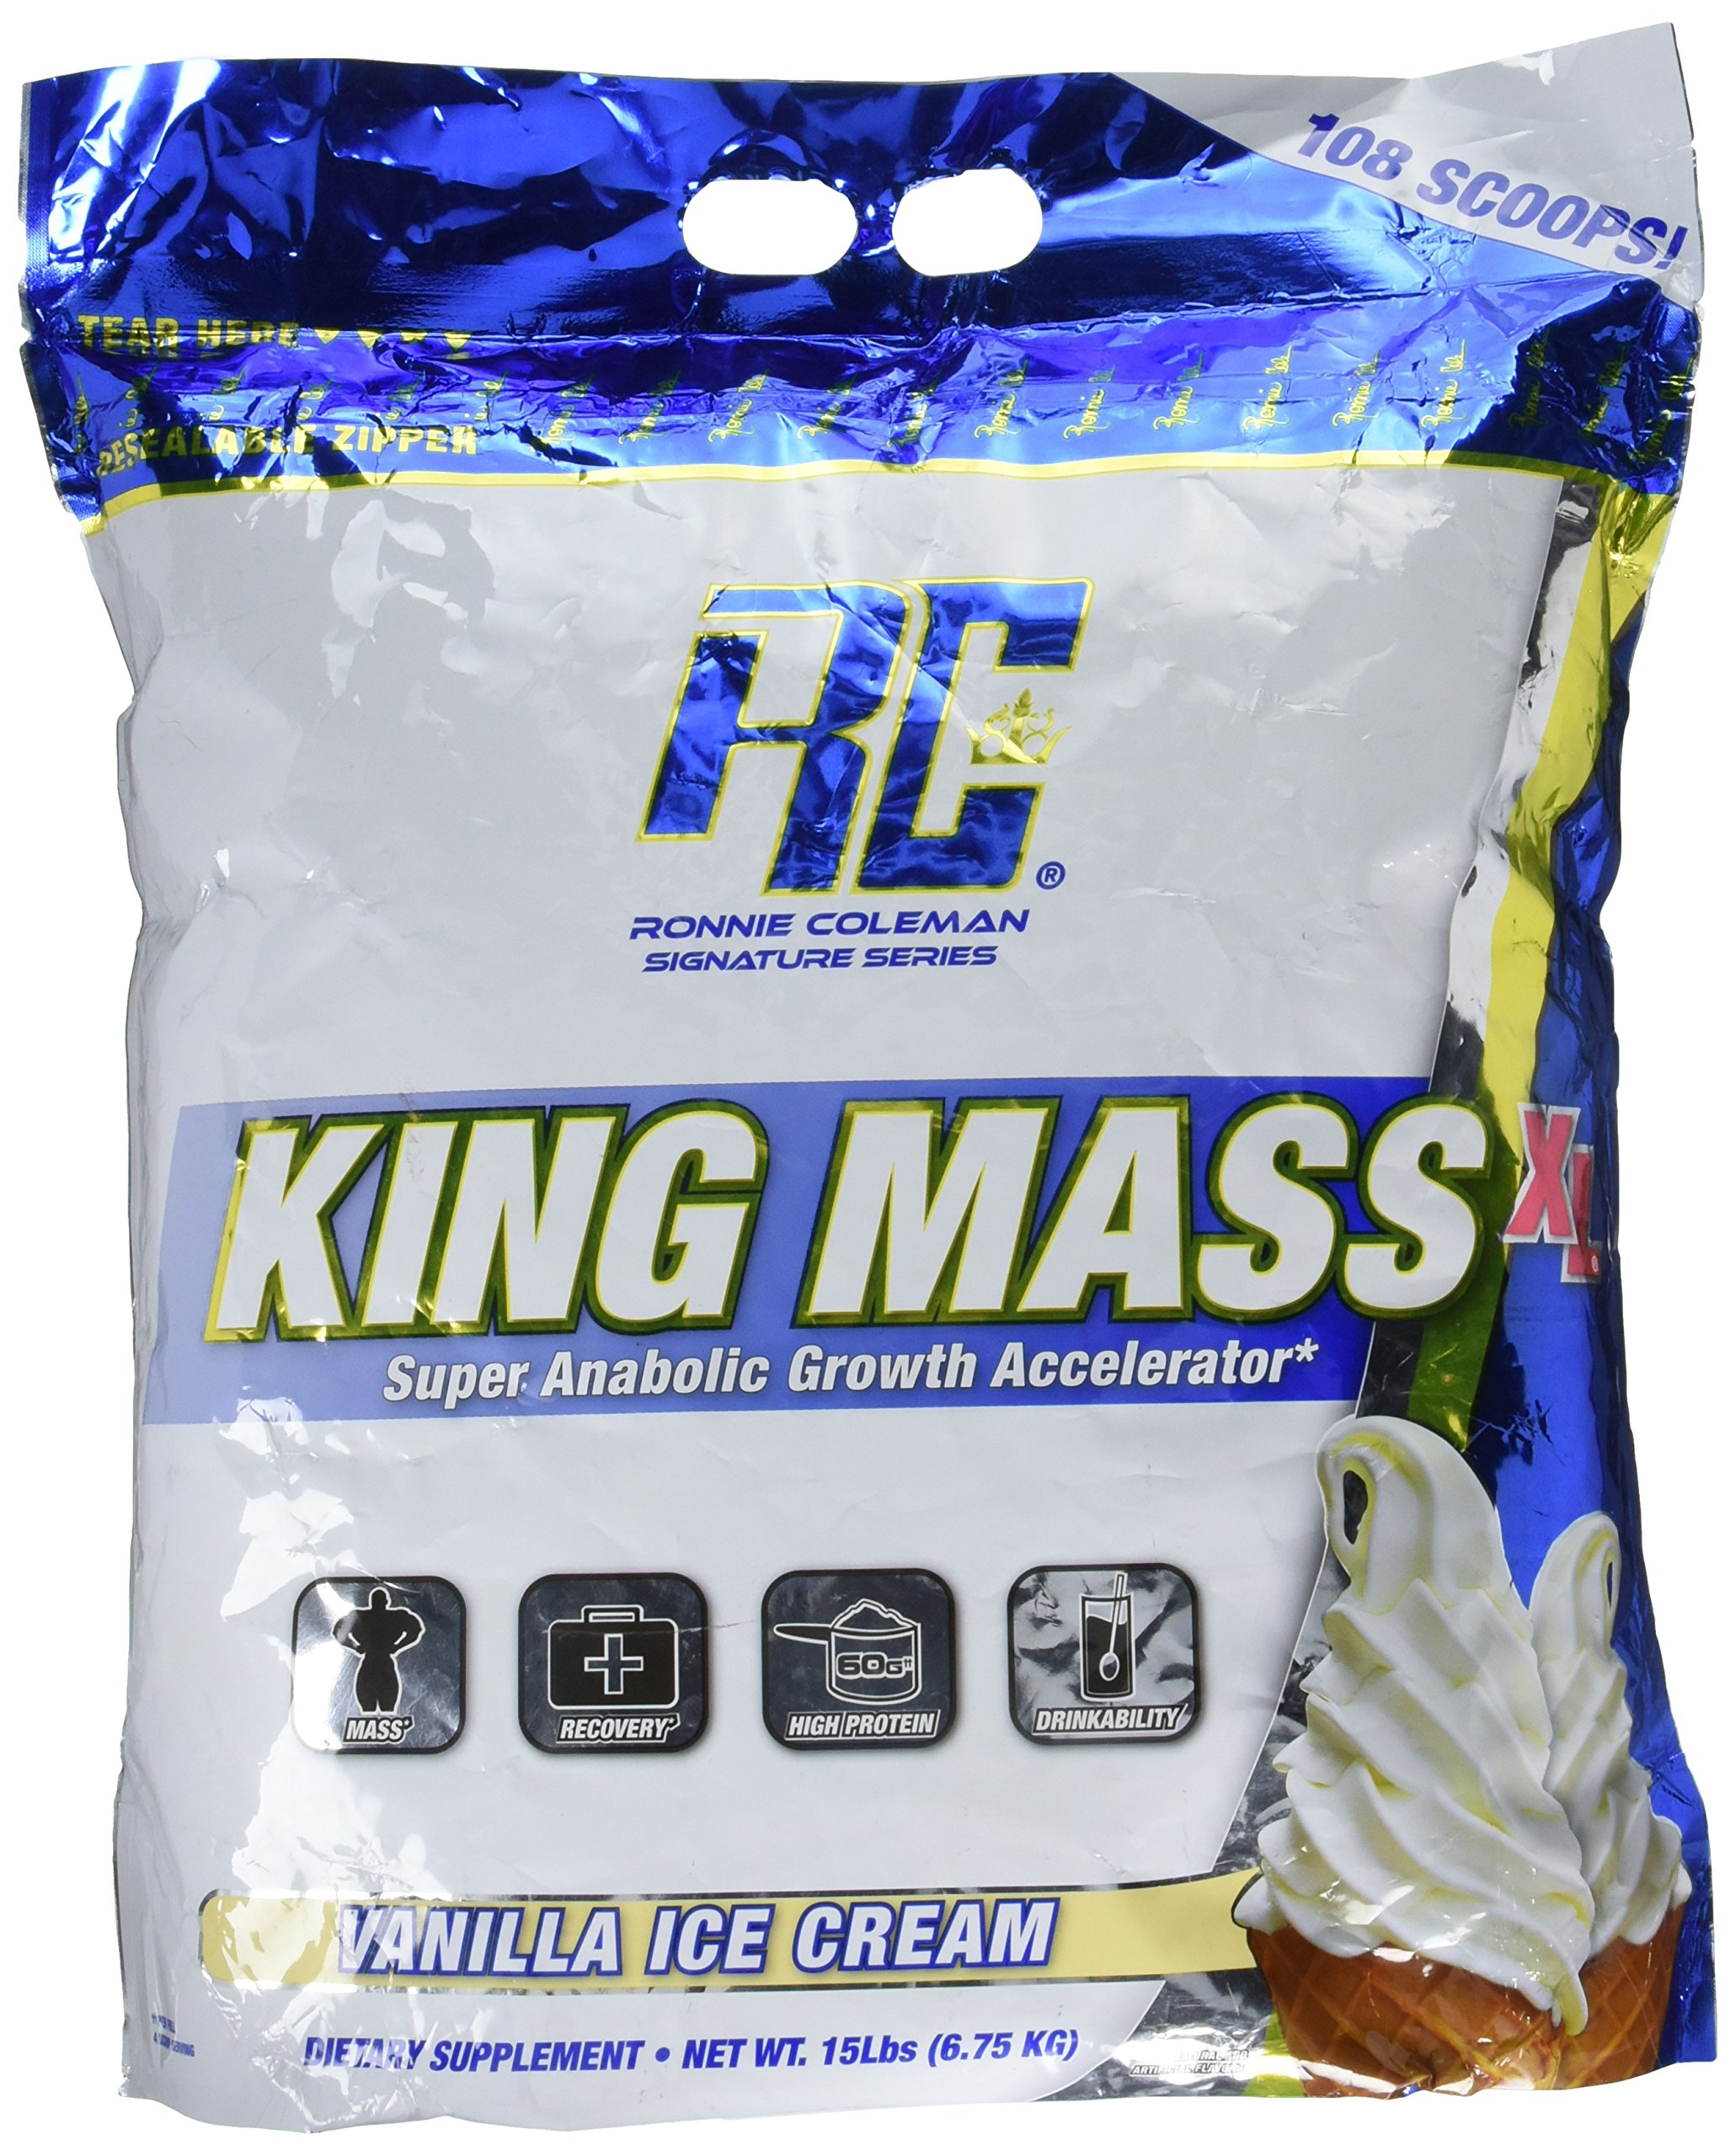 Ronnie Coleman Signature Series, King Mass-XL Super Anabolic Growth Accelerator, Vanilla Ice Cream, 15 Pound